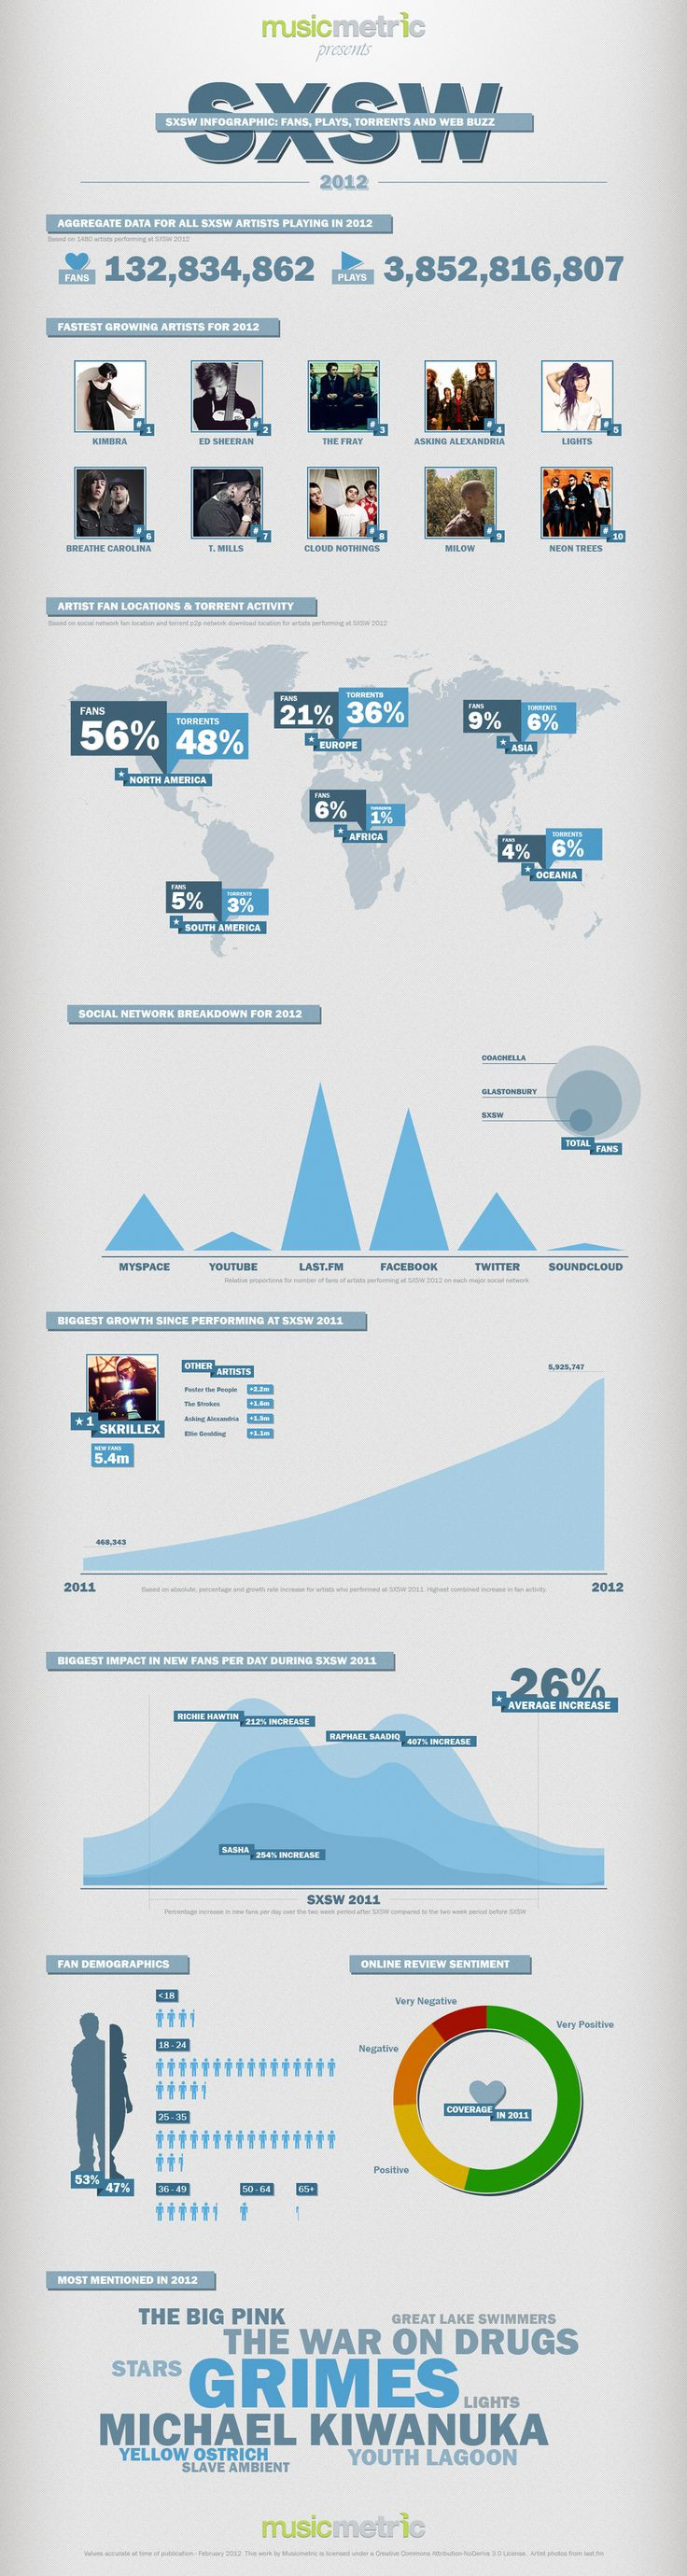 MusicMetric's SXSW Music infographic - awesome!